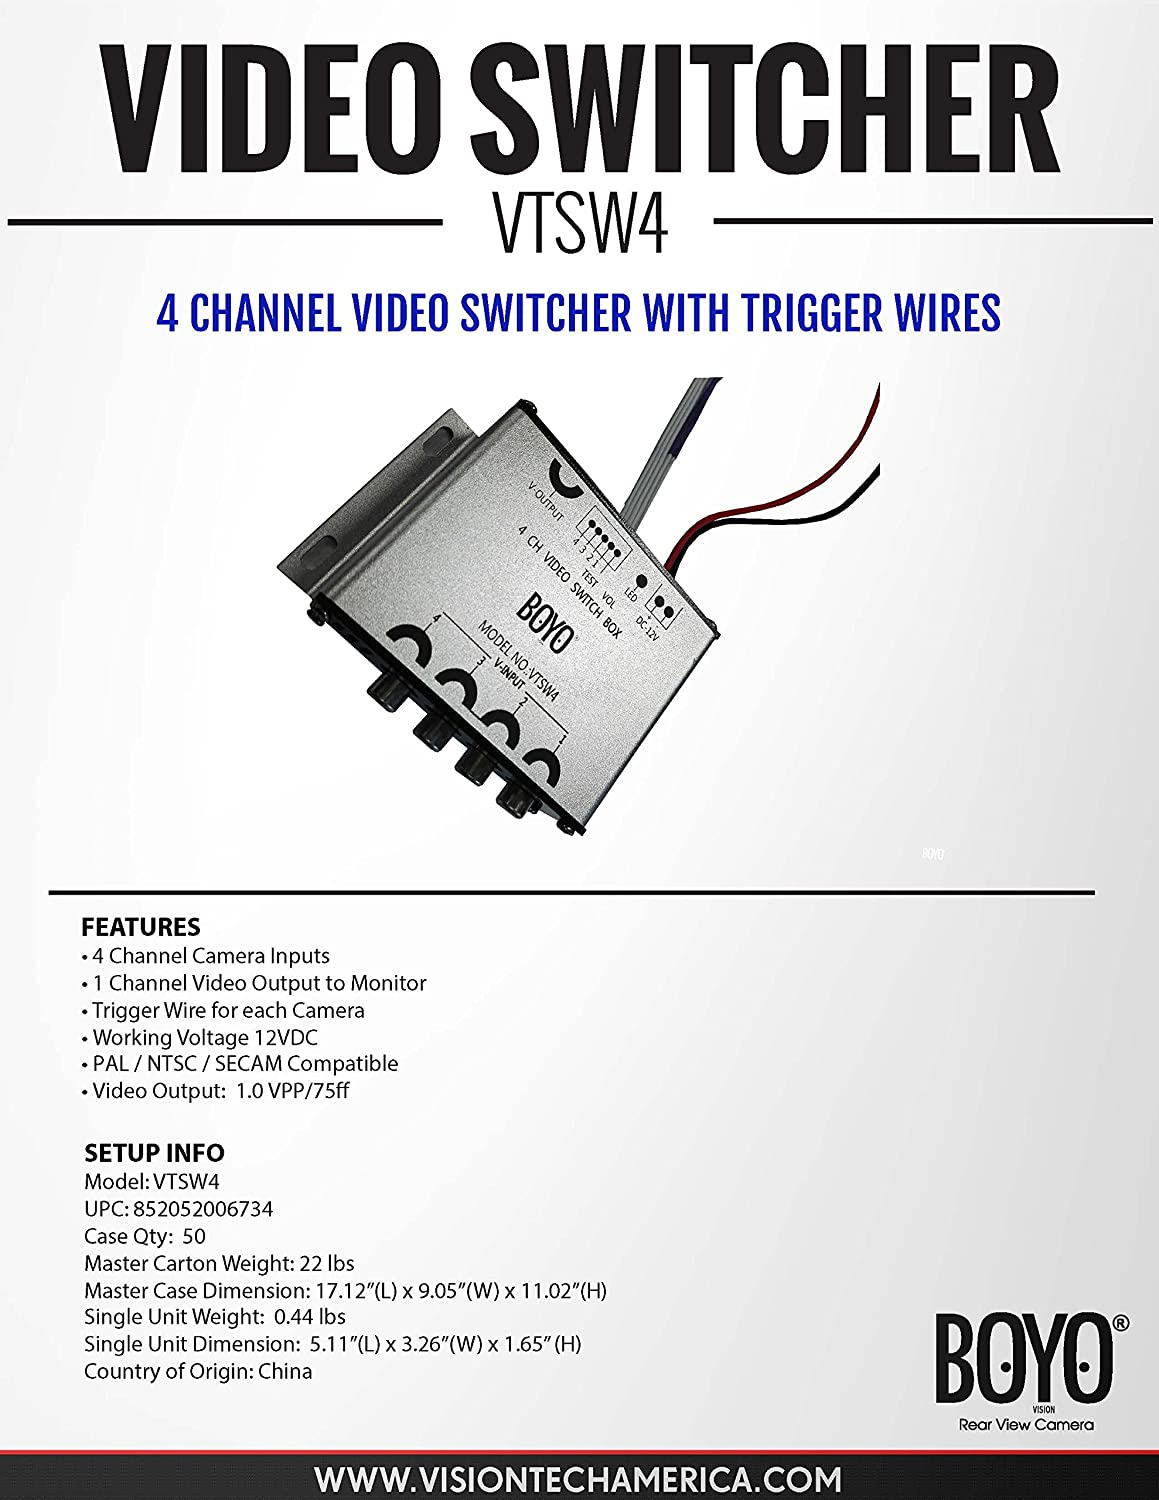 Amazon.com: Boyo VTSW4 4 Channel Camera Video Switcher with ... on sound diagrams, voice diagrams, audio wiring diagrams, data diagrams, residential wiring diagrams,